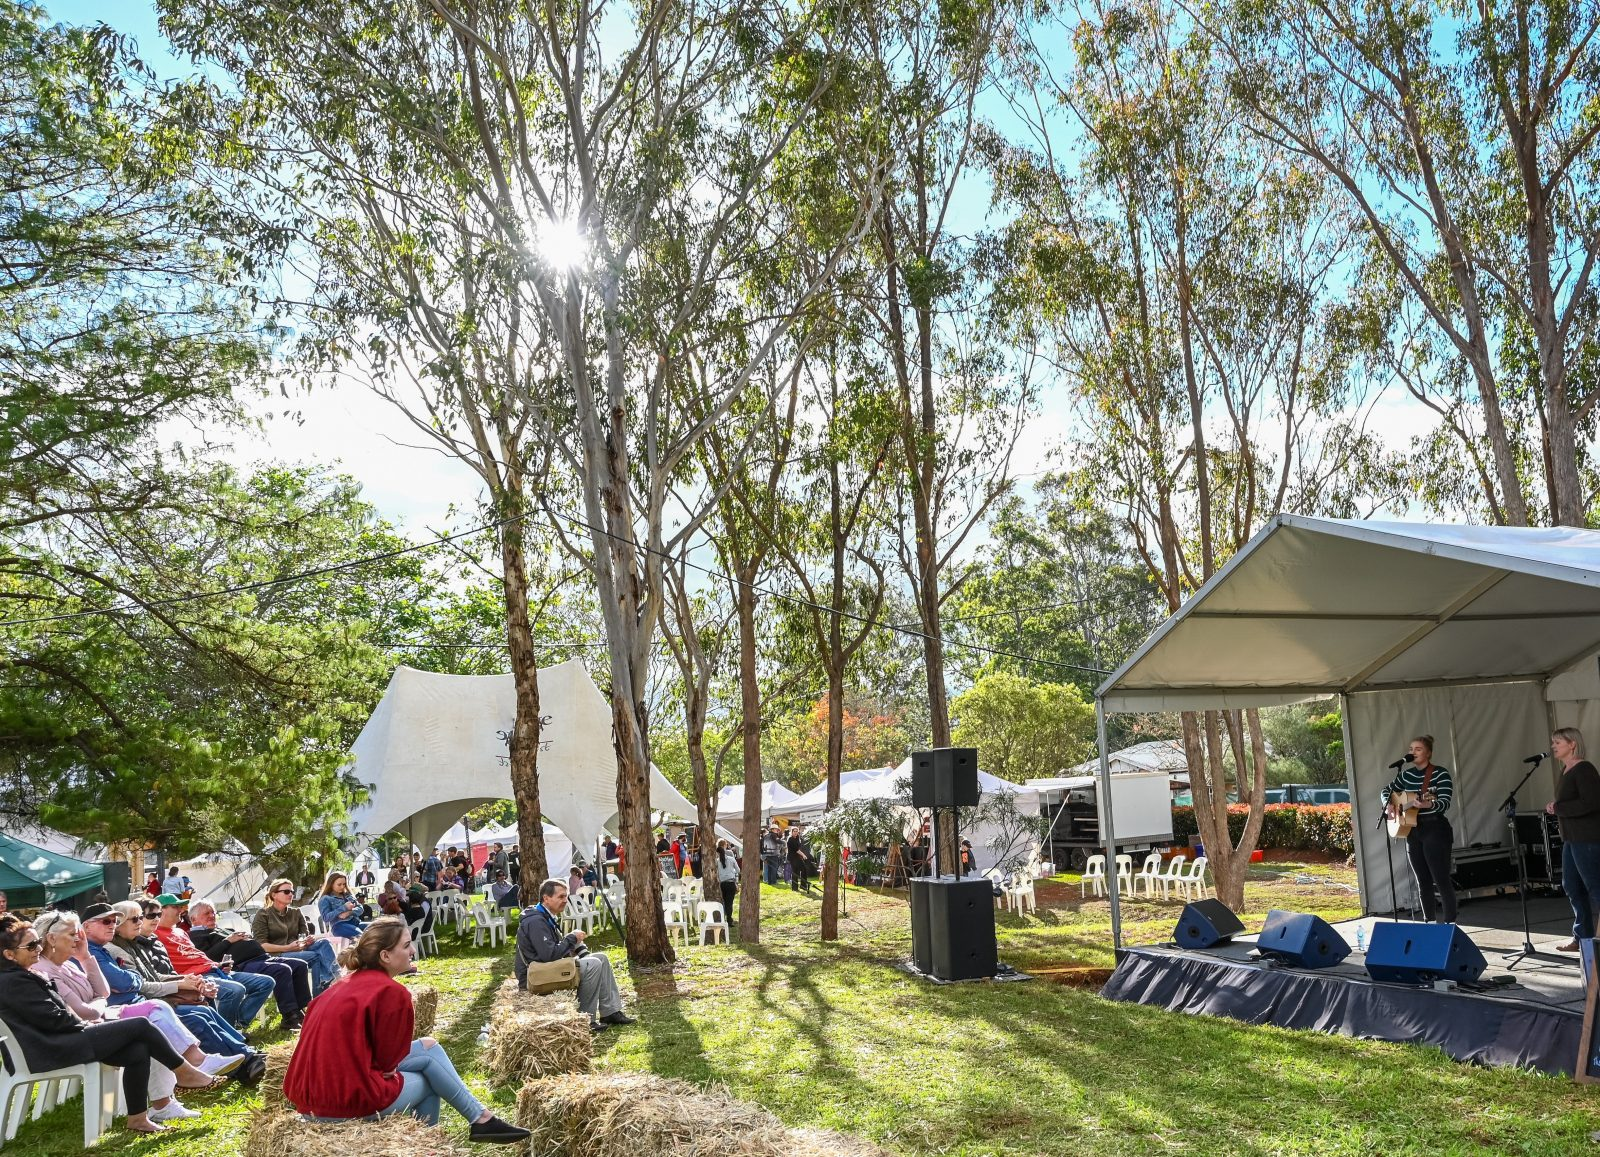 Enjoy the Festival's live music and taste superb, local produce, food and wine